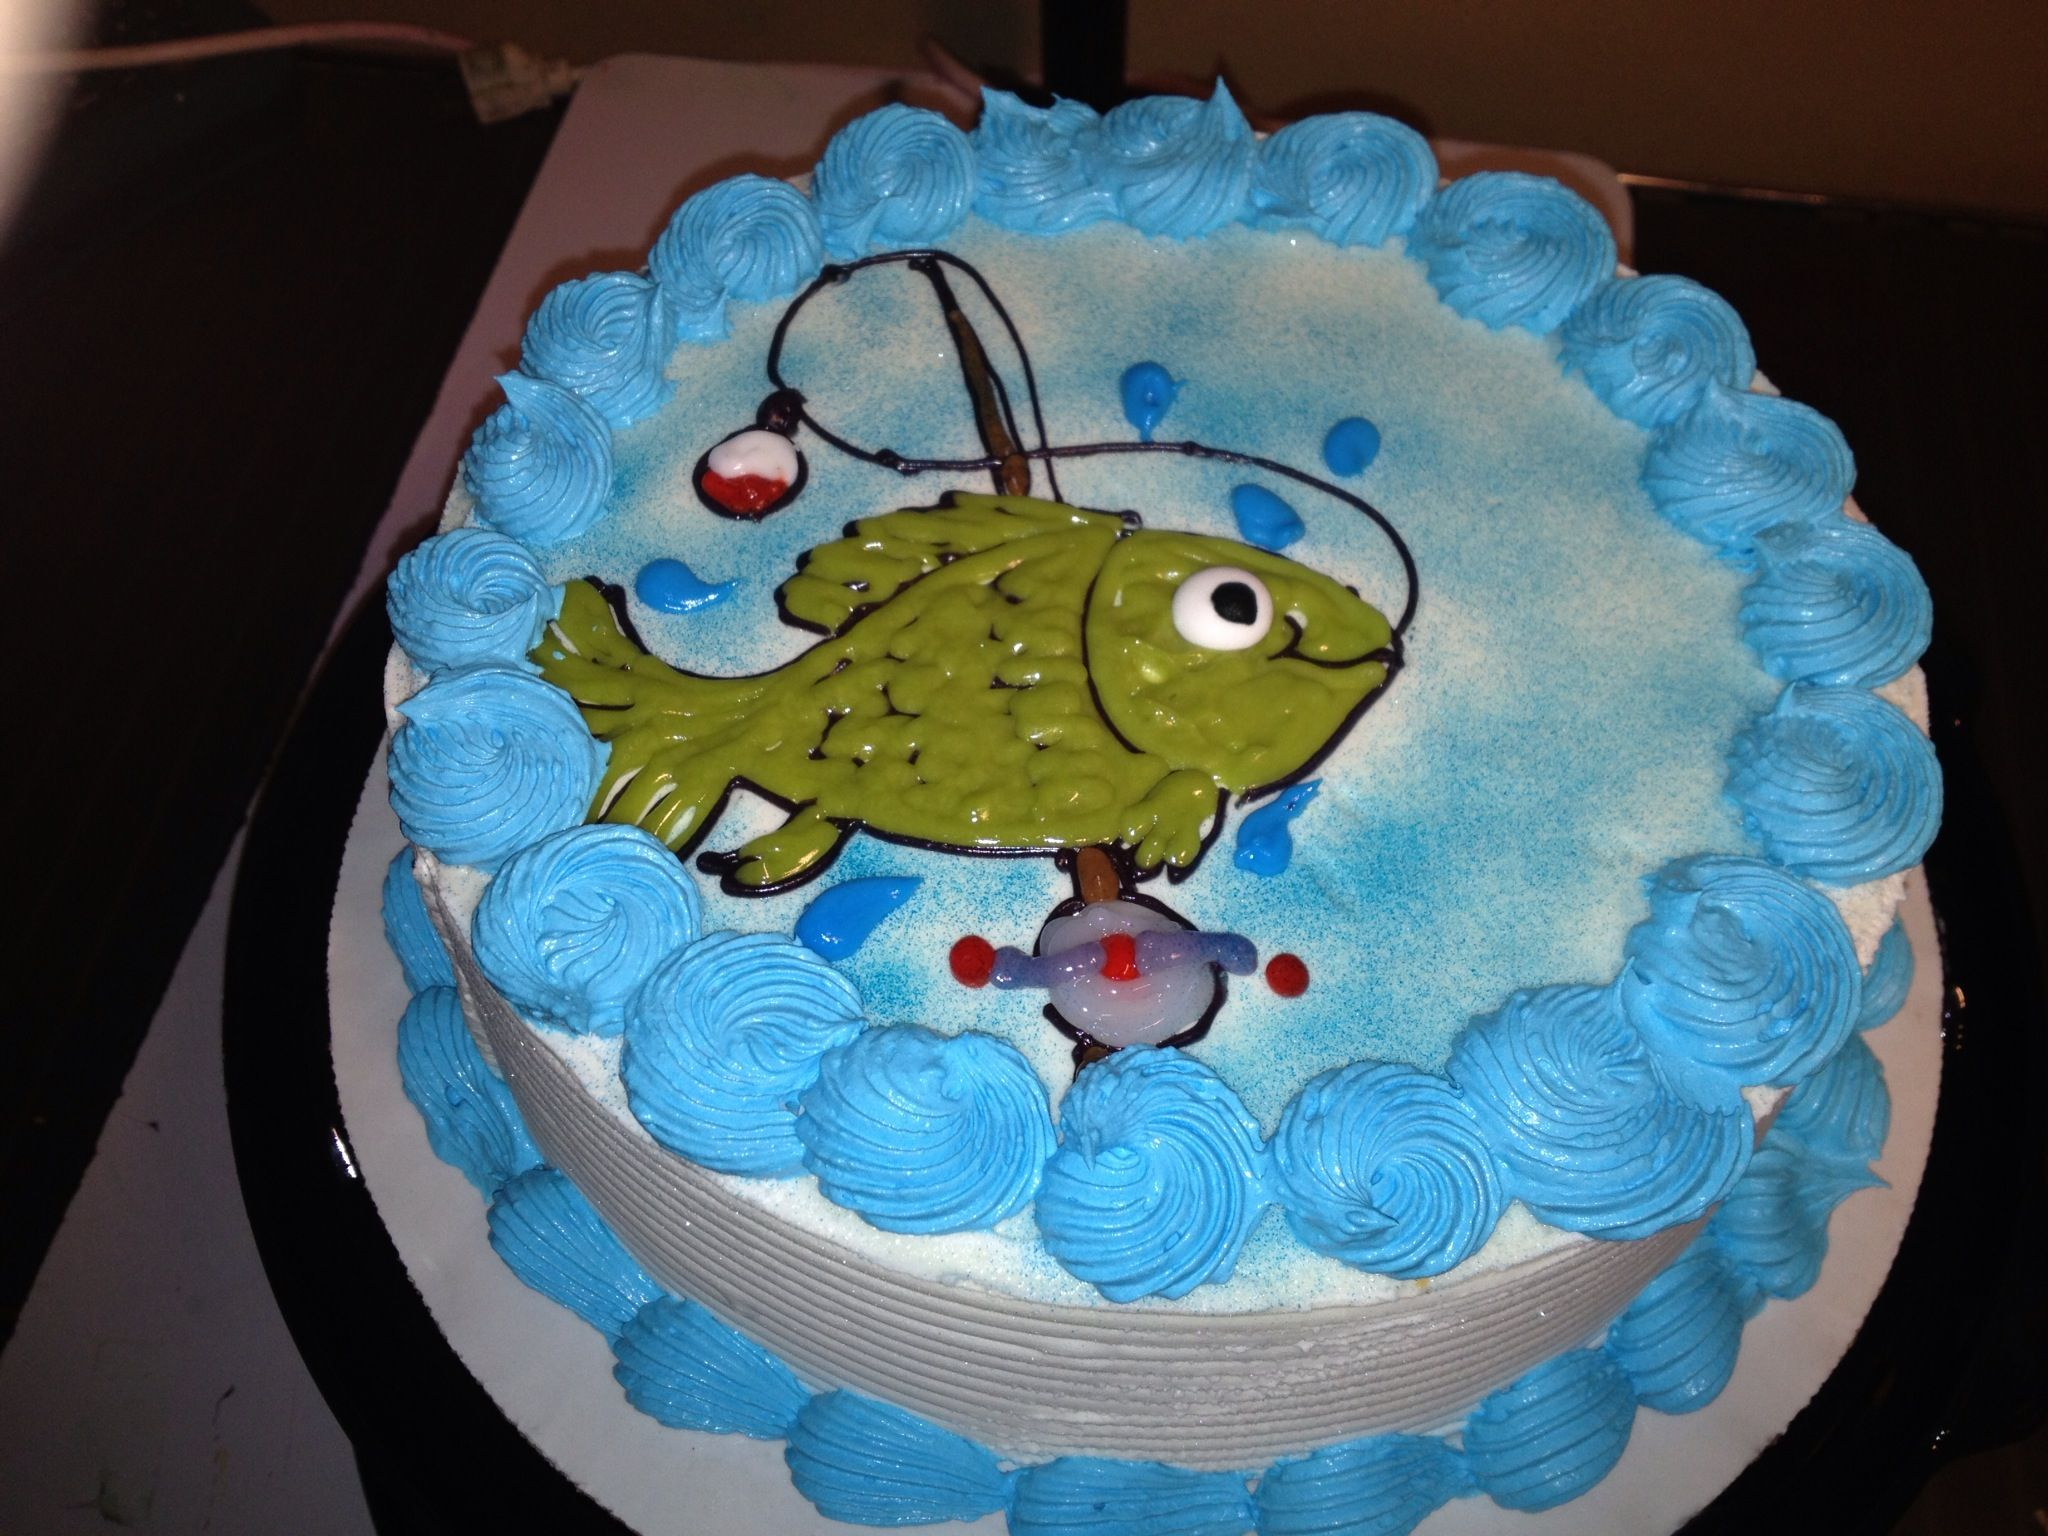 Dairy Queen Log Cake Designs : Dq cakes...Dairy Queen. Fishing. Let there be CAKE ...